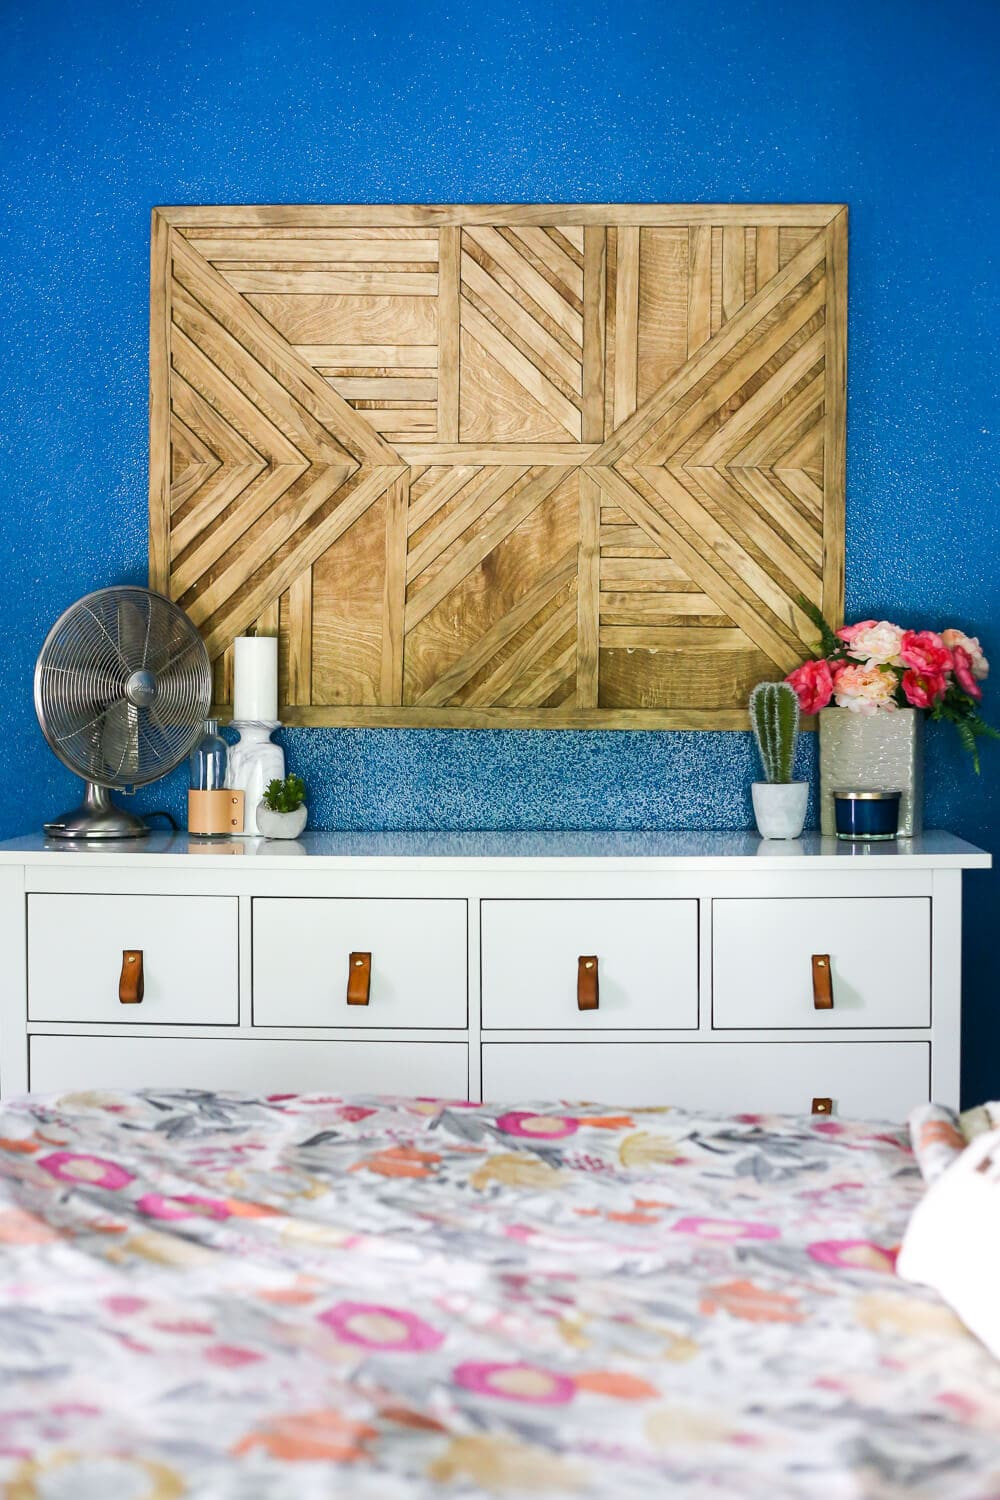 DIY Wooden Wall Art  DIY Wood Wall Art How to Make Your Own Love